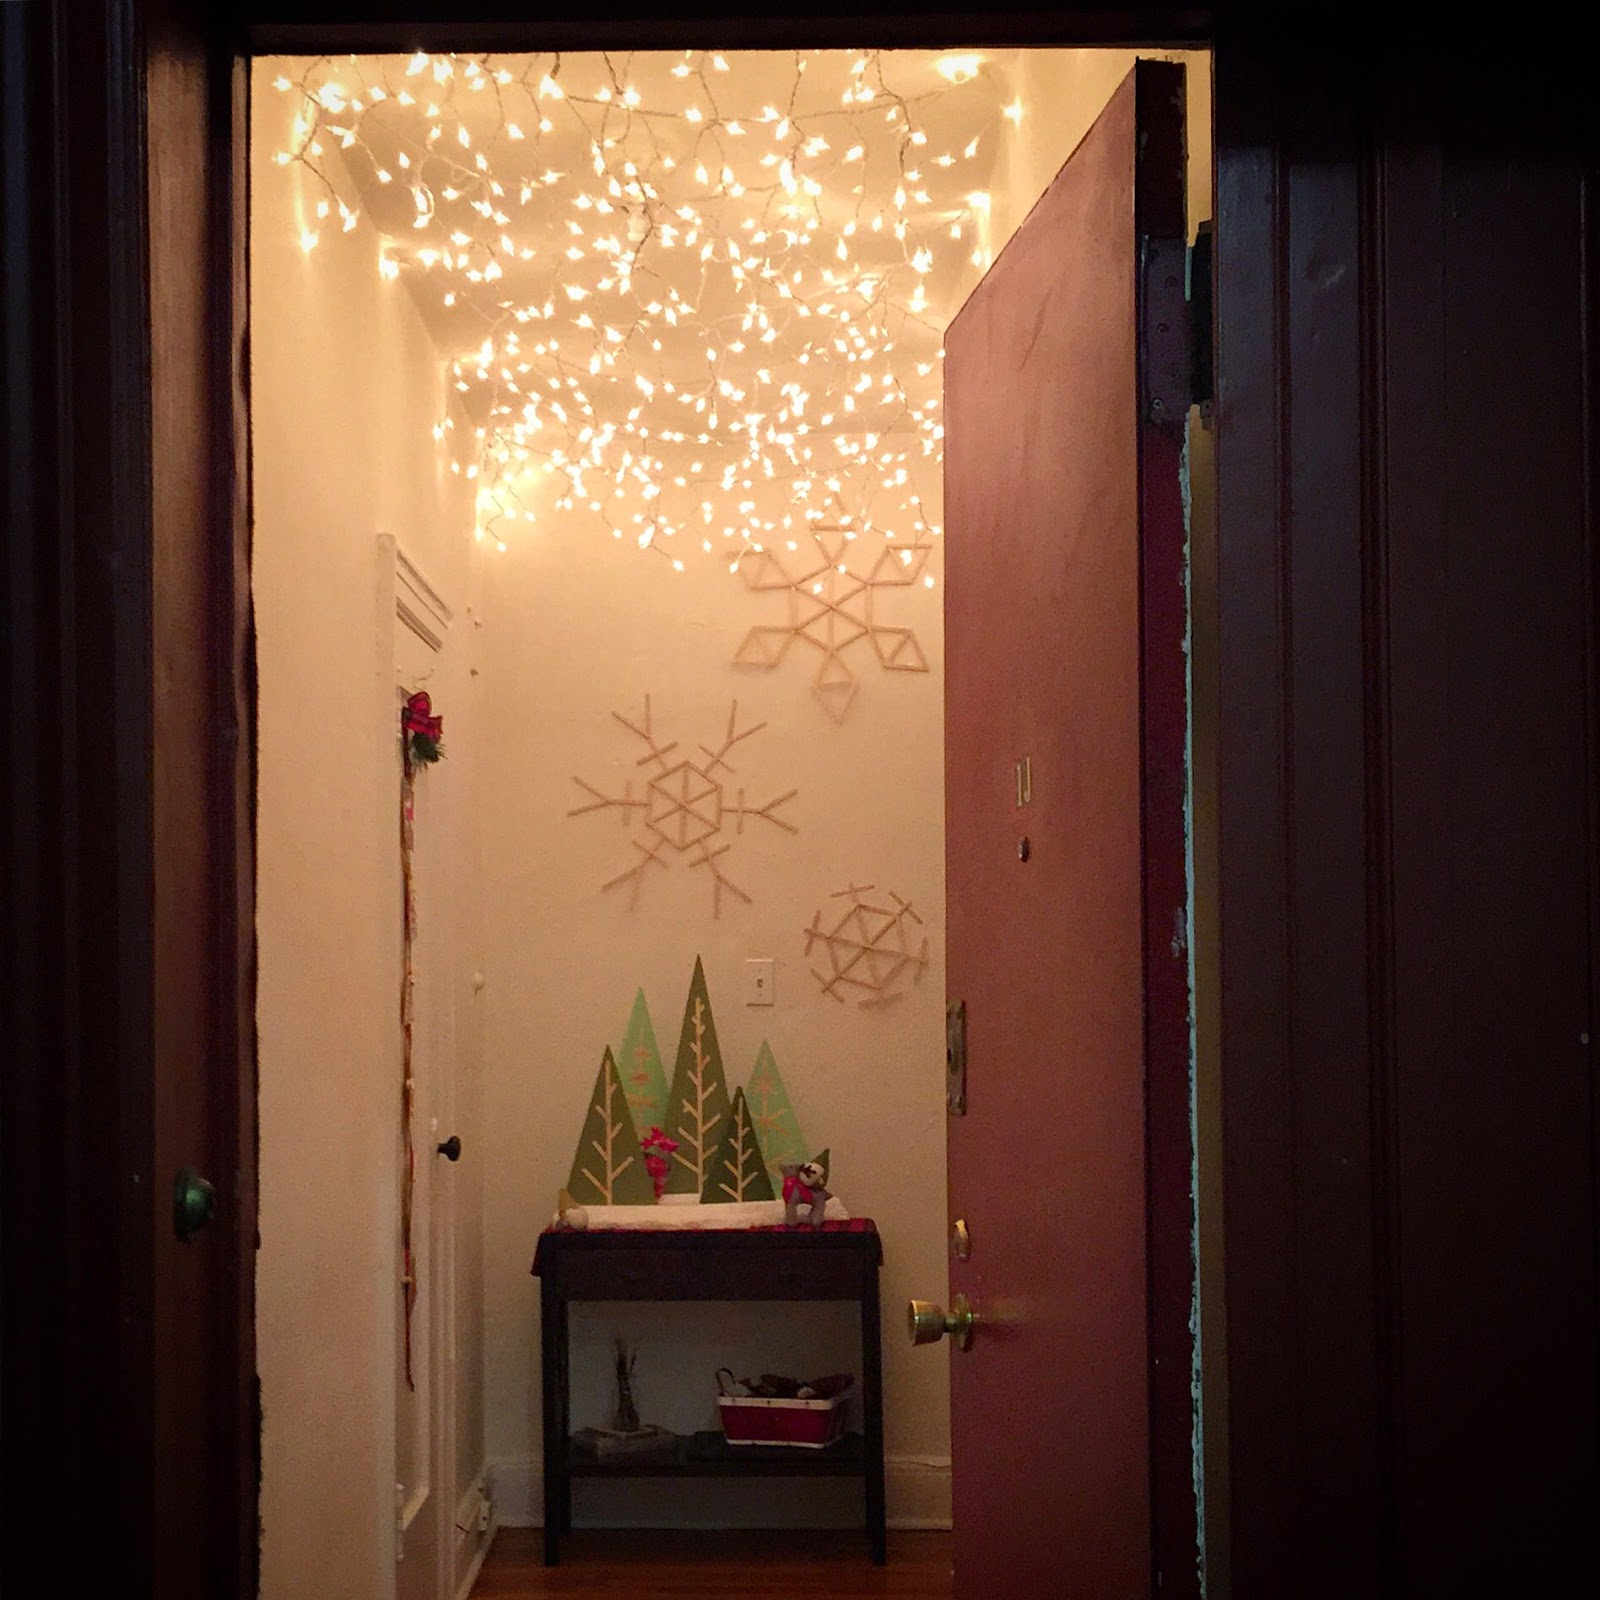 http://craftylumberjacks.blogspot.com/2014/12/walking-in-winter-wonder-hallway.html